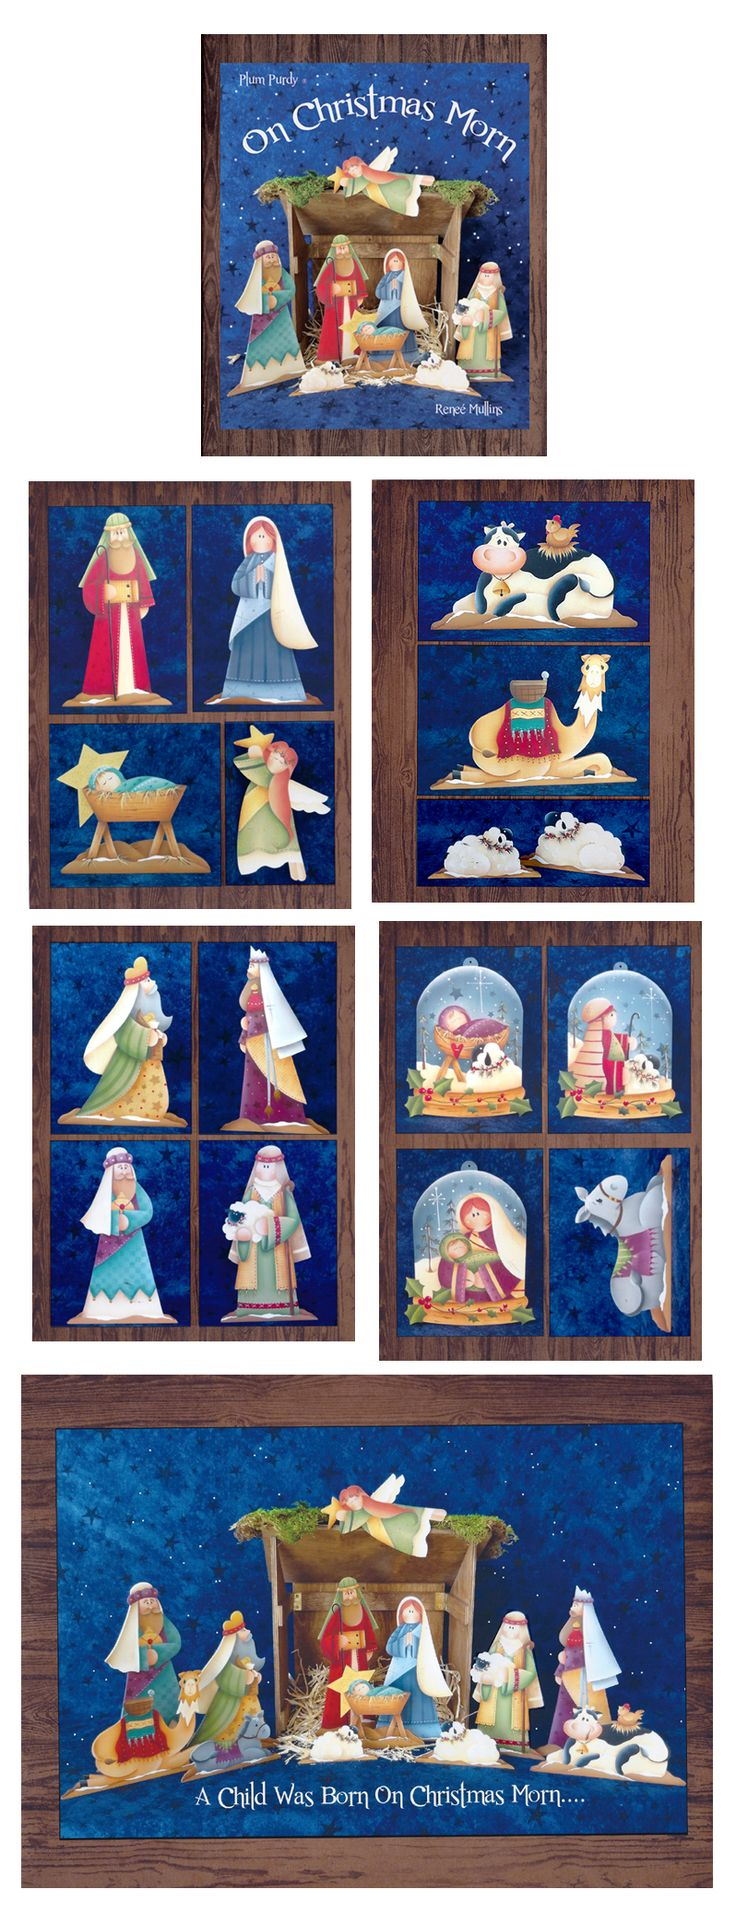 On Christmas Morn (BOOK)--Love this new book and the surfaces from Plum Purdy Designs.  What a precious manger scene to paint!